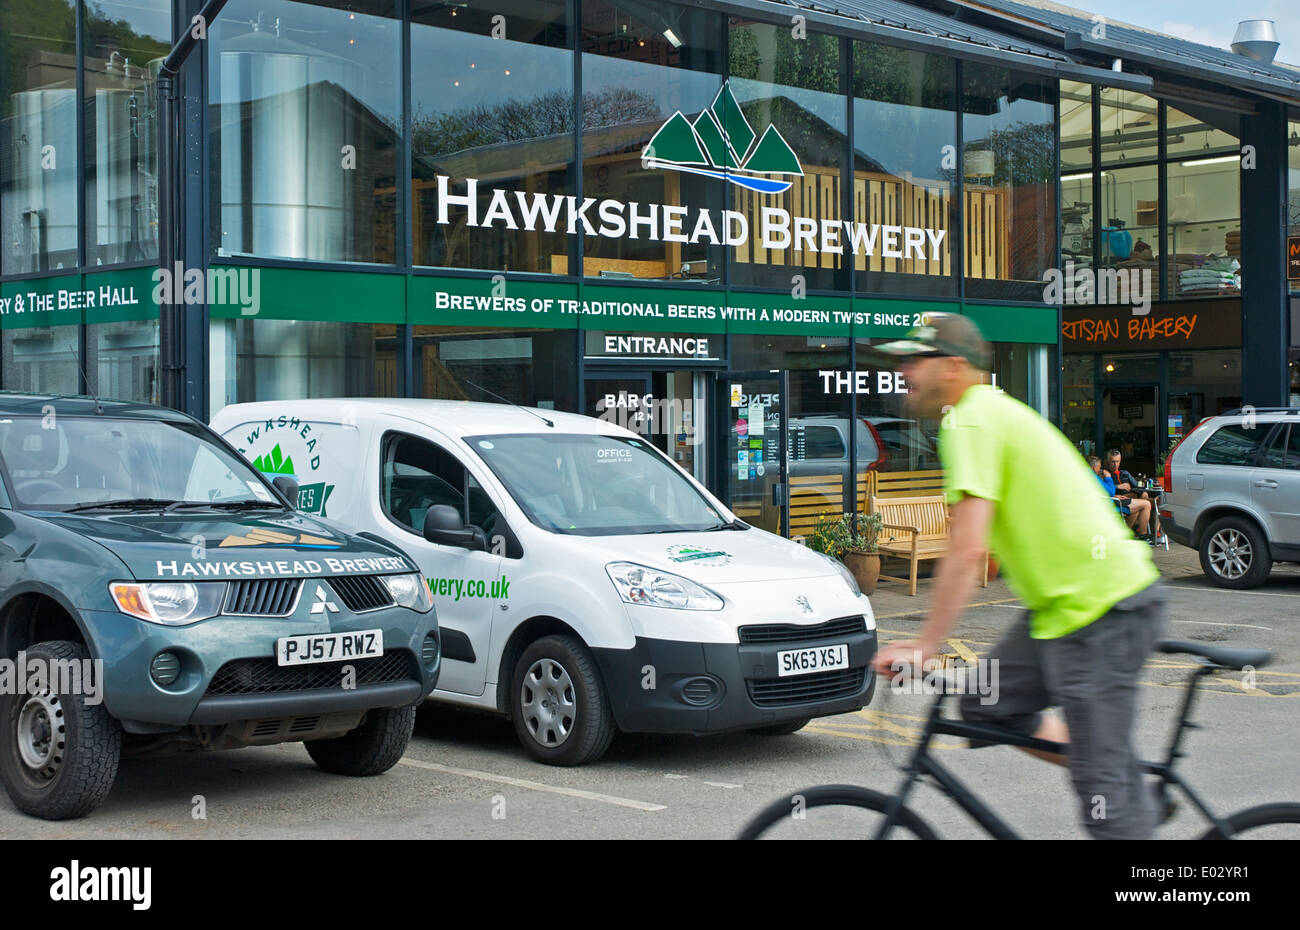 Hawkshead Brewery in the village of Staveley, South Lakeland, Lake District National Park, Cumbria, England UK - Stock Image